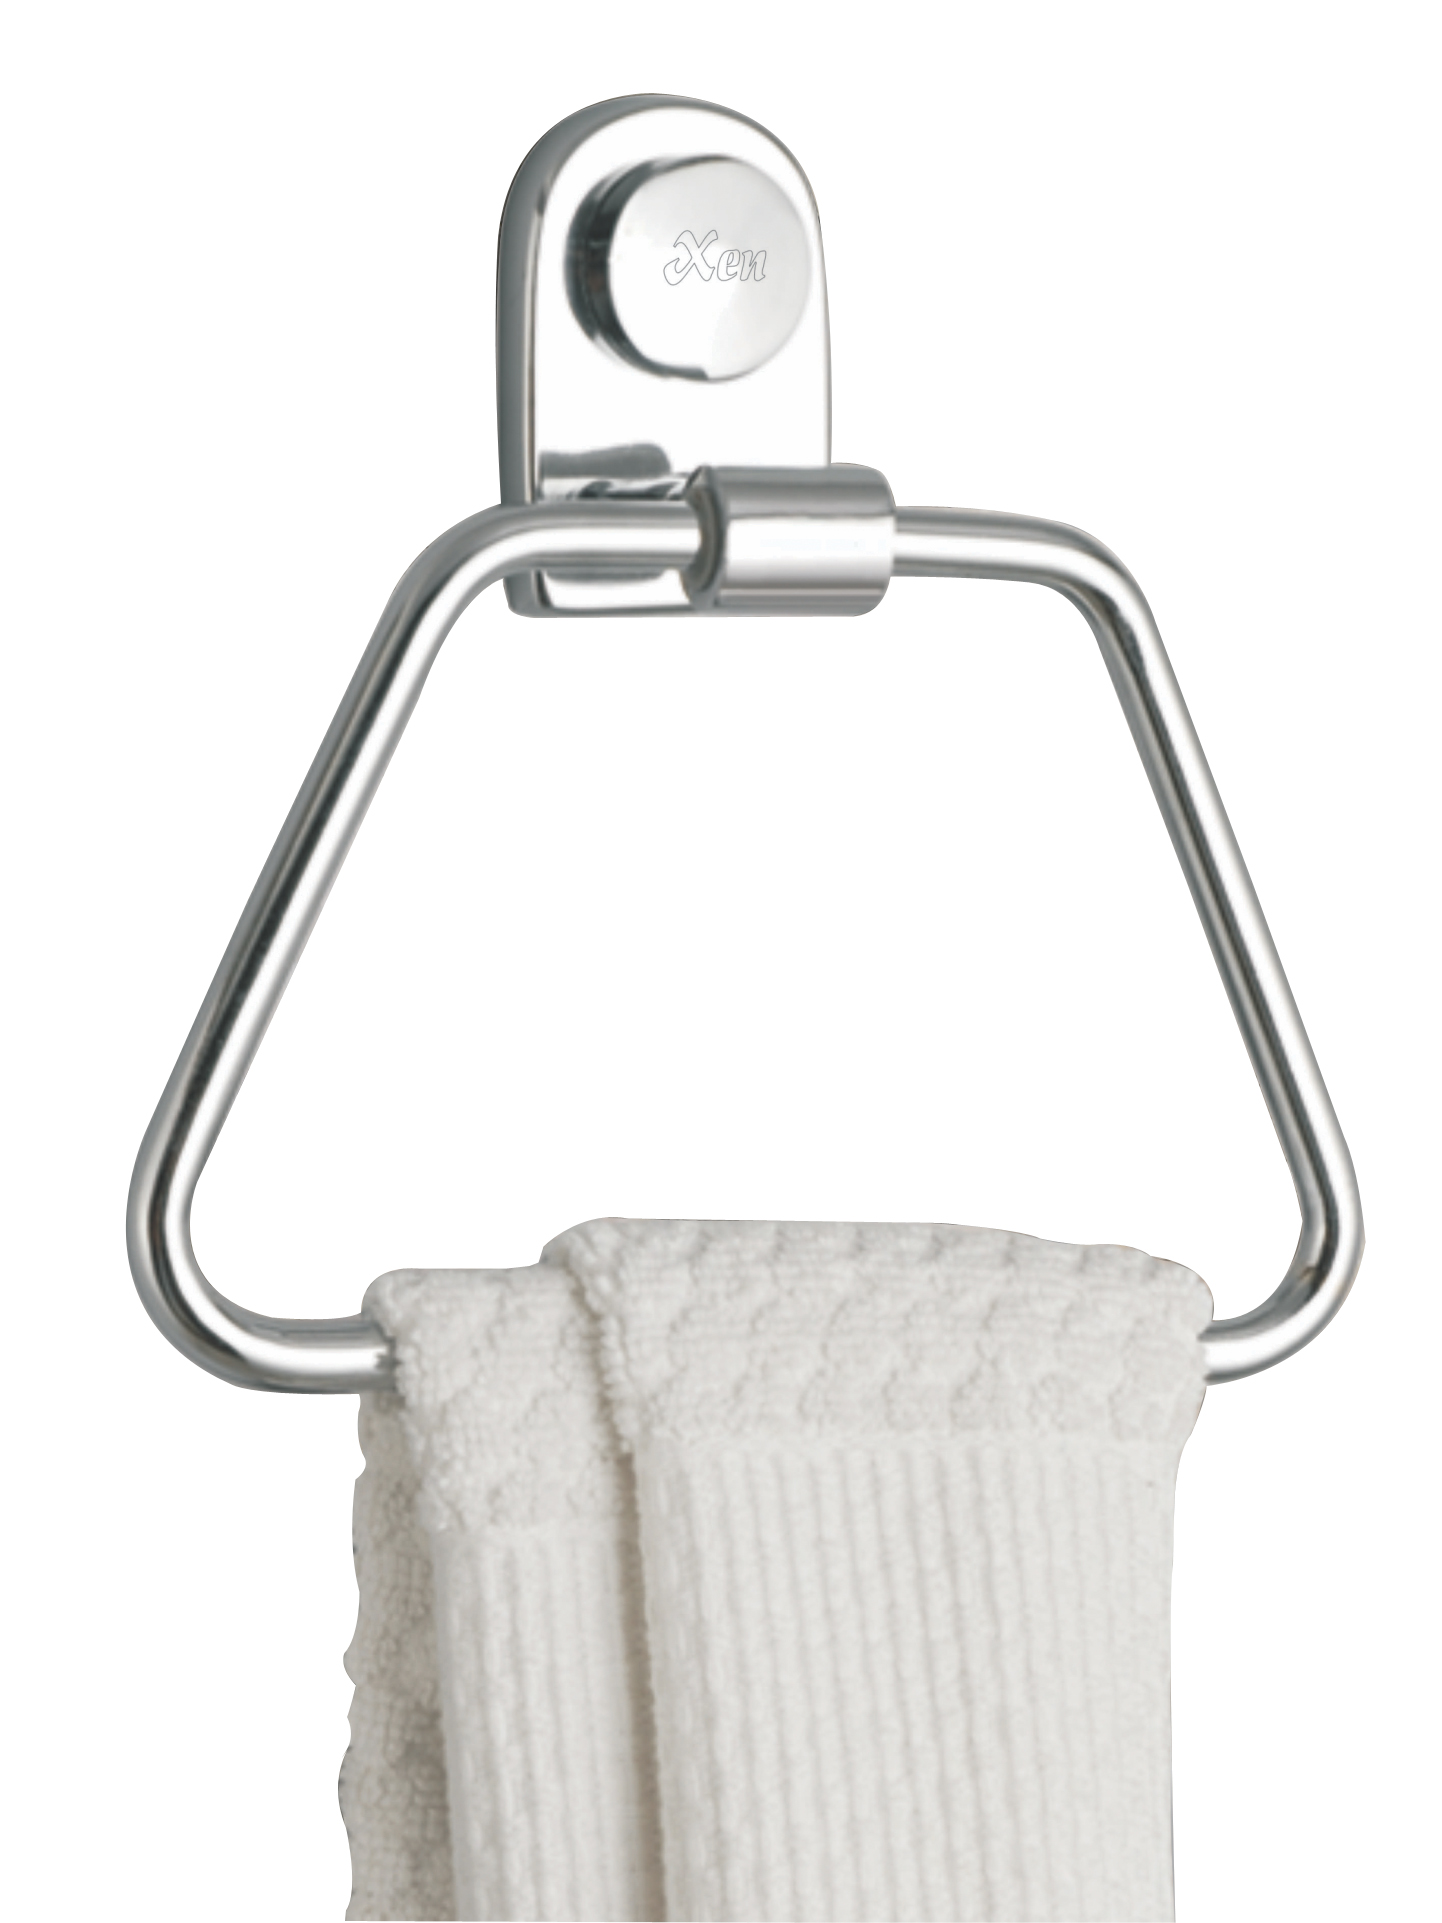 Towel Ring Budget Triangle